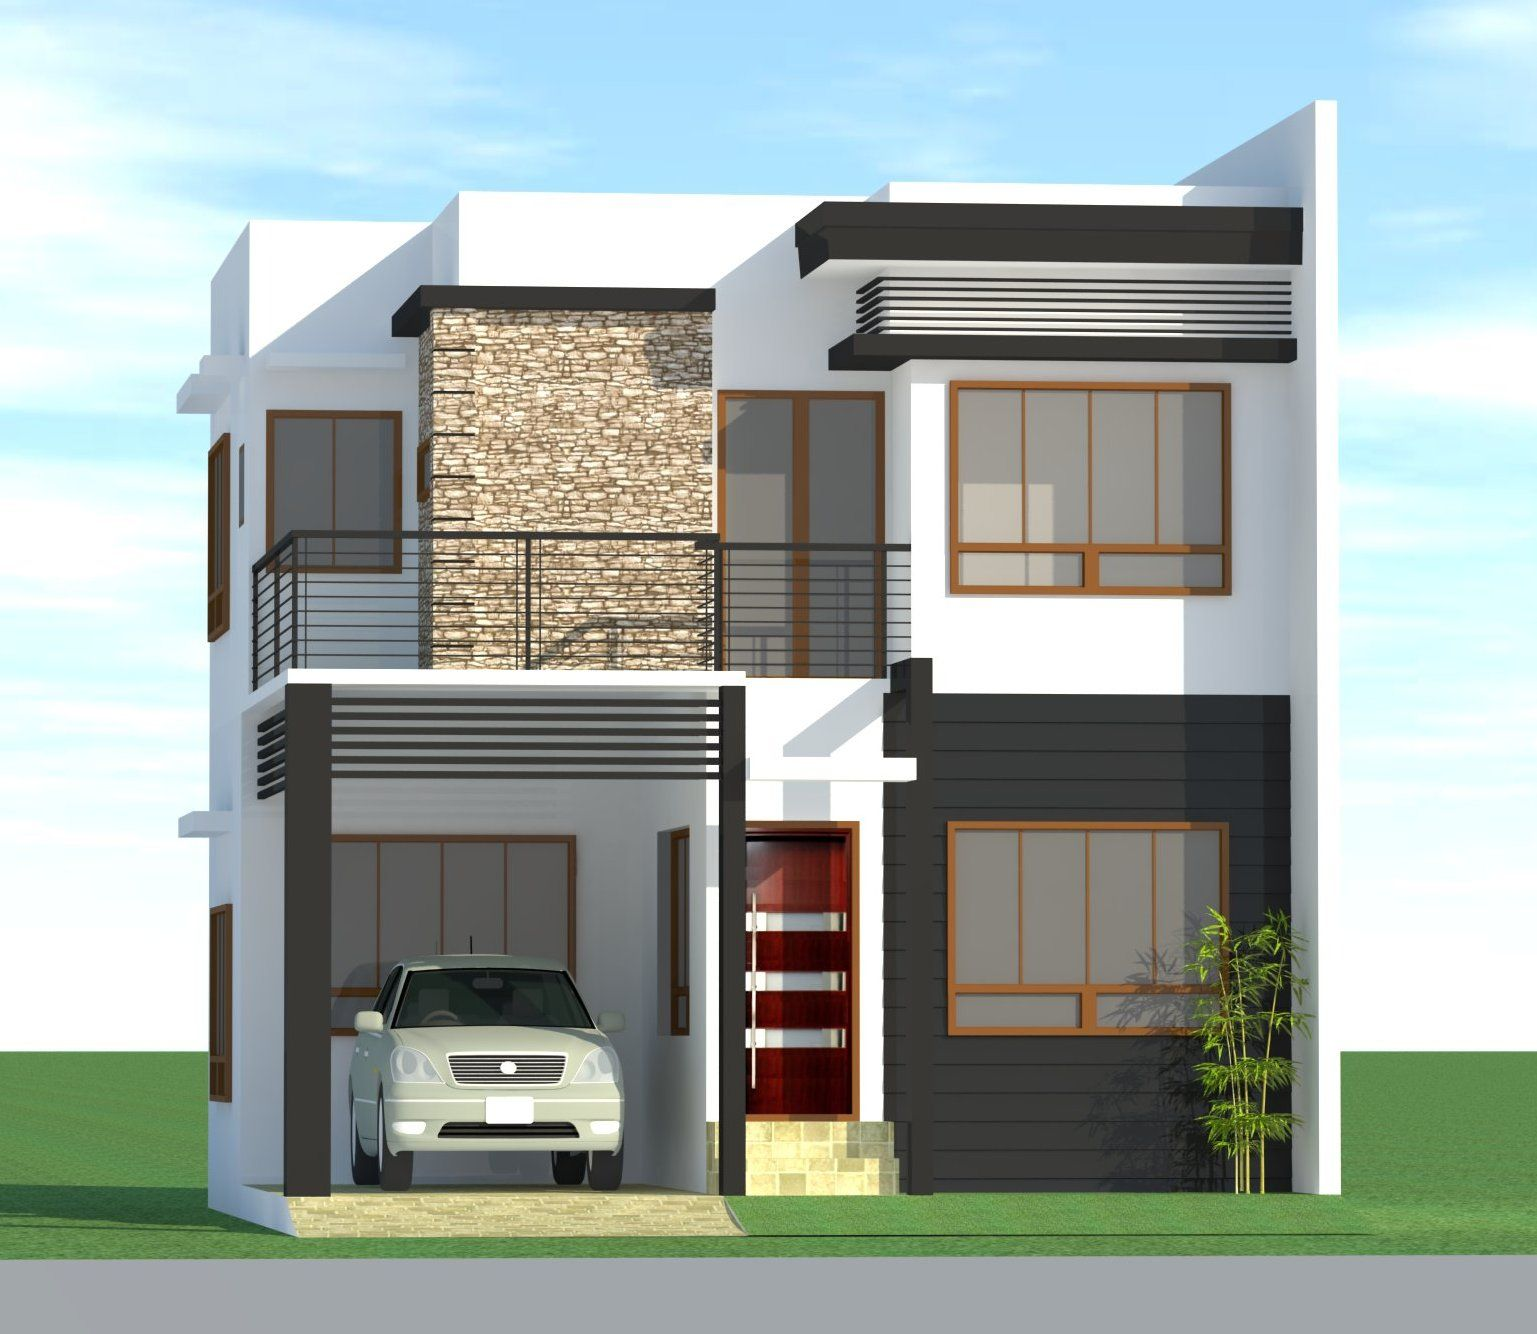 Home Design Exterior Ideas In India: Philippines House Design Images 3 Home Design Ideas